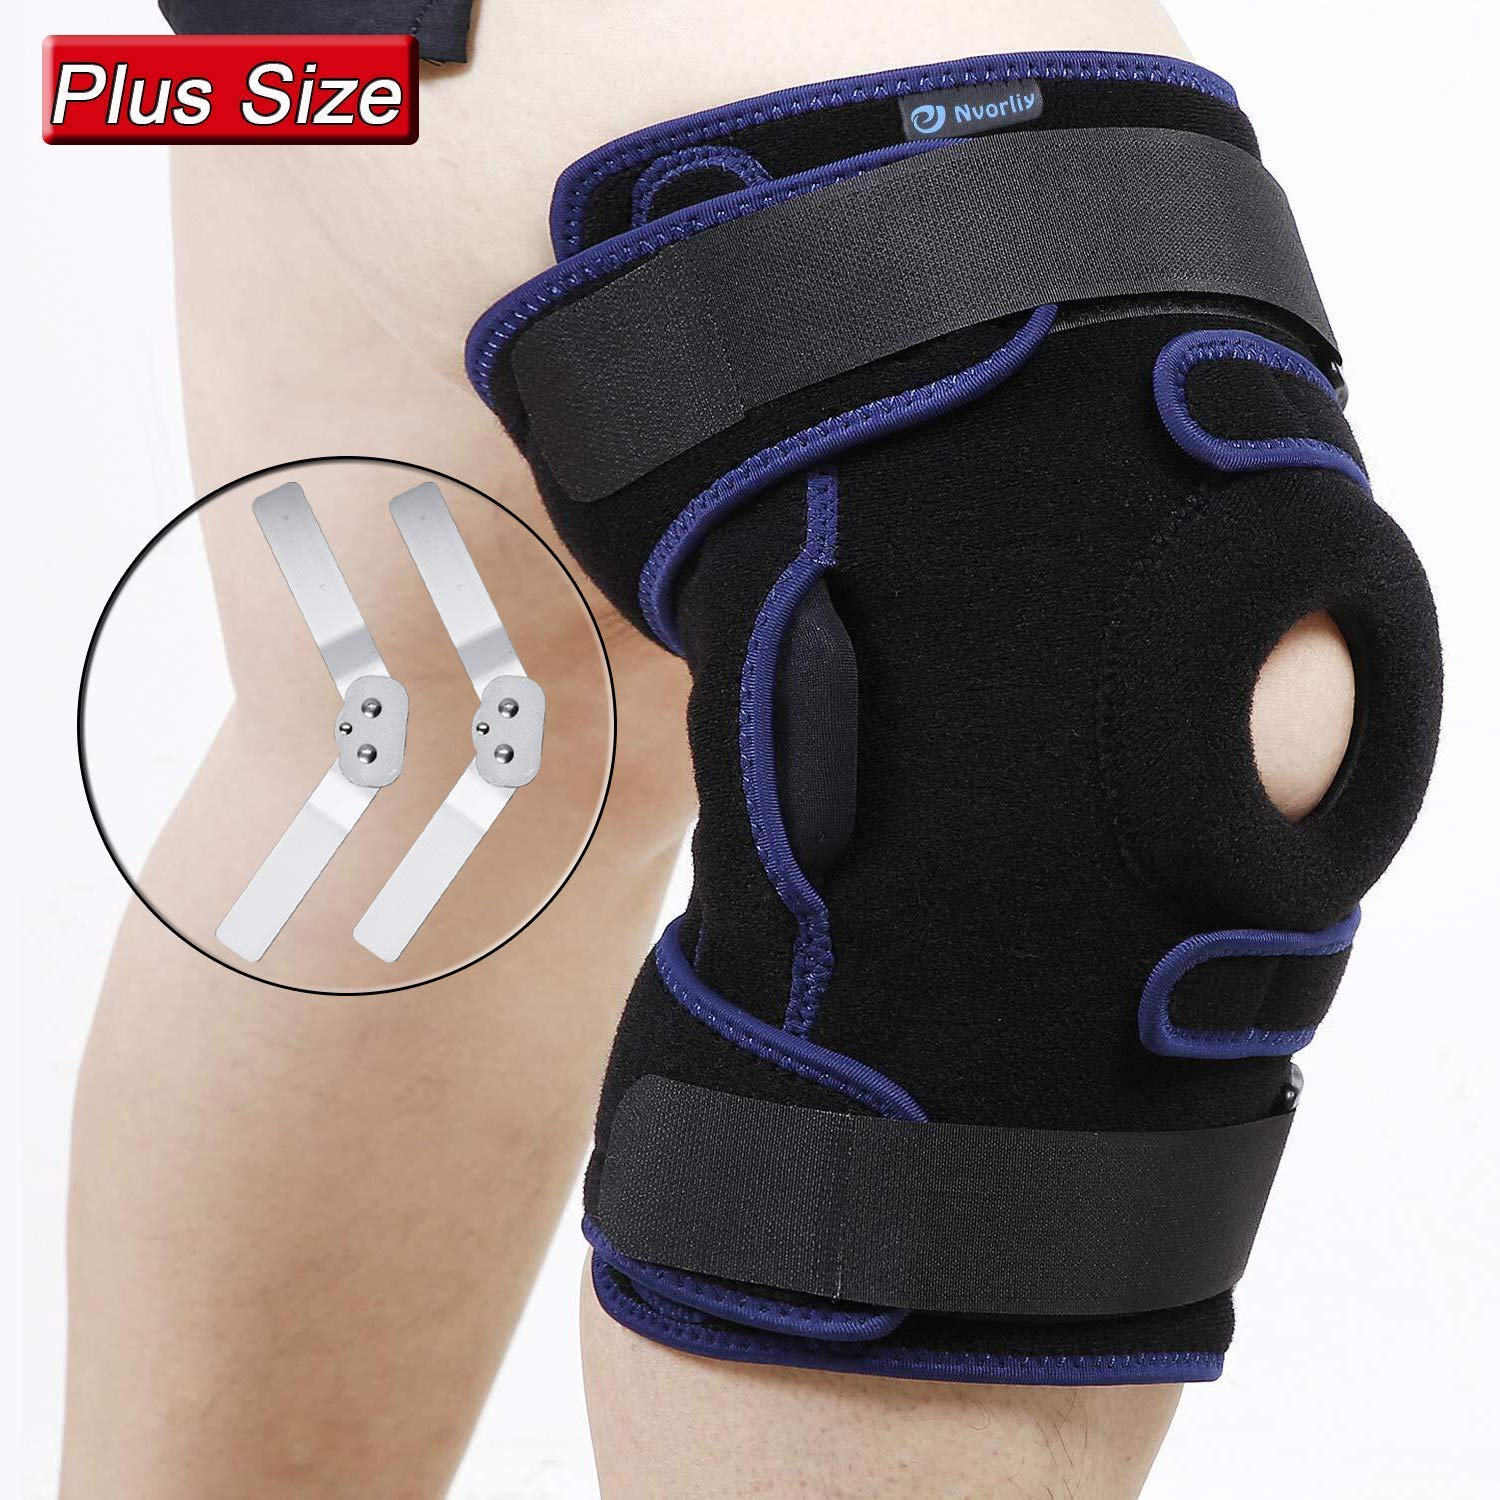 Nvorliy Plus Size Hinged Knee Brace Dual Strap Patellar Stabilization Design & High-Level Support for Arthritis, ACL, LCL, MCL, Meniscus Tear, TDislocation, Post-Surgery Recovery Fit Men & Women (XL) by Nvorliy